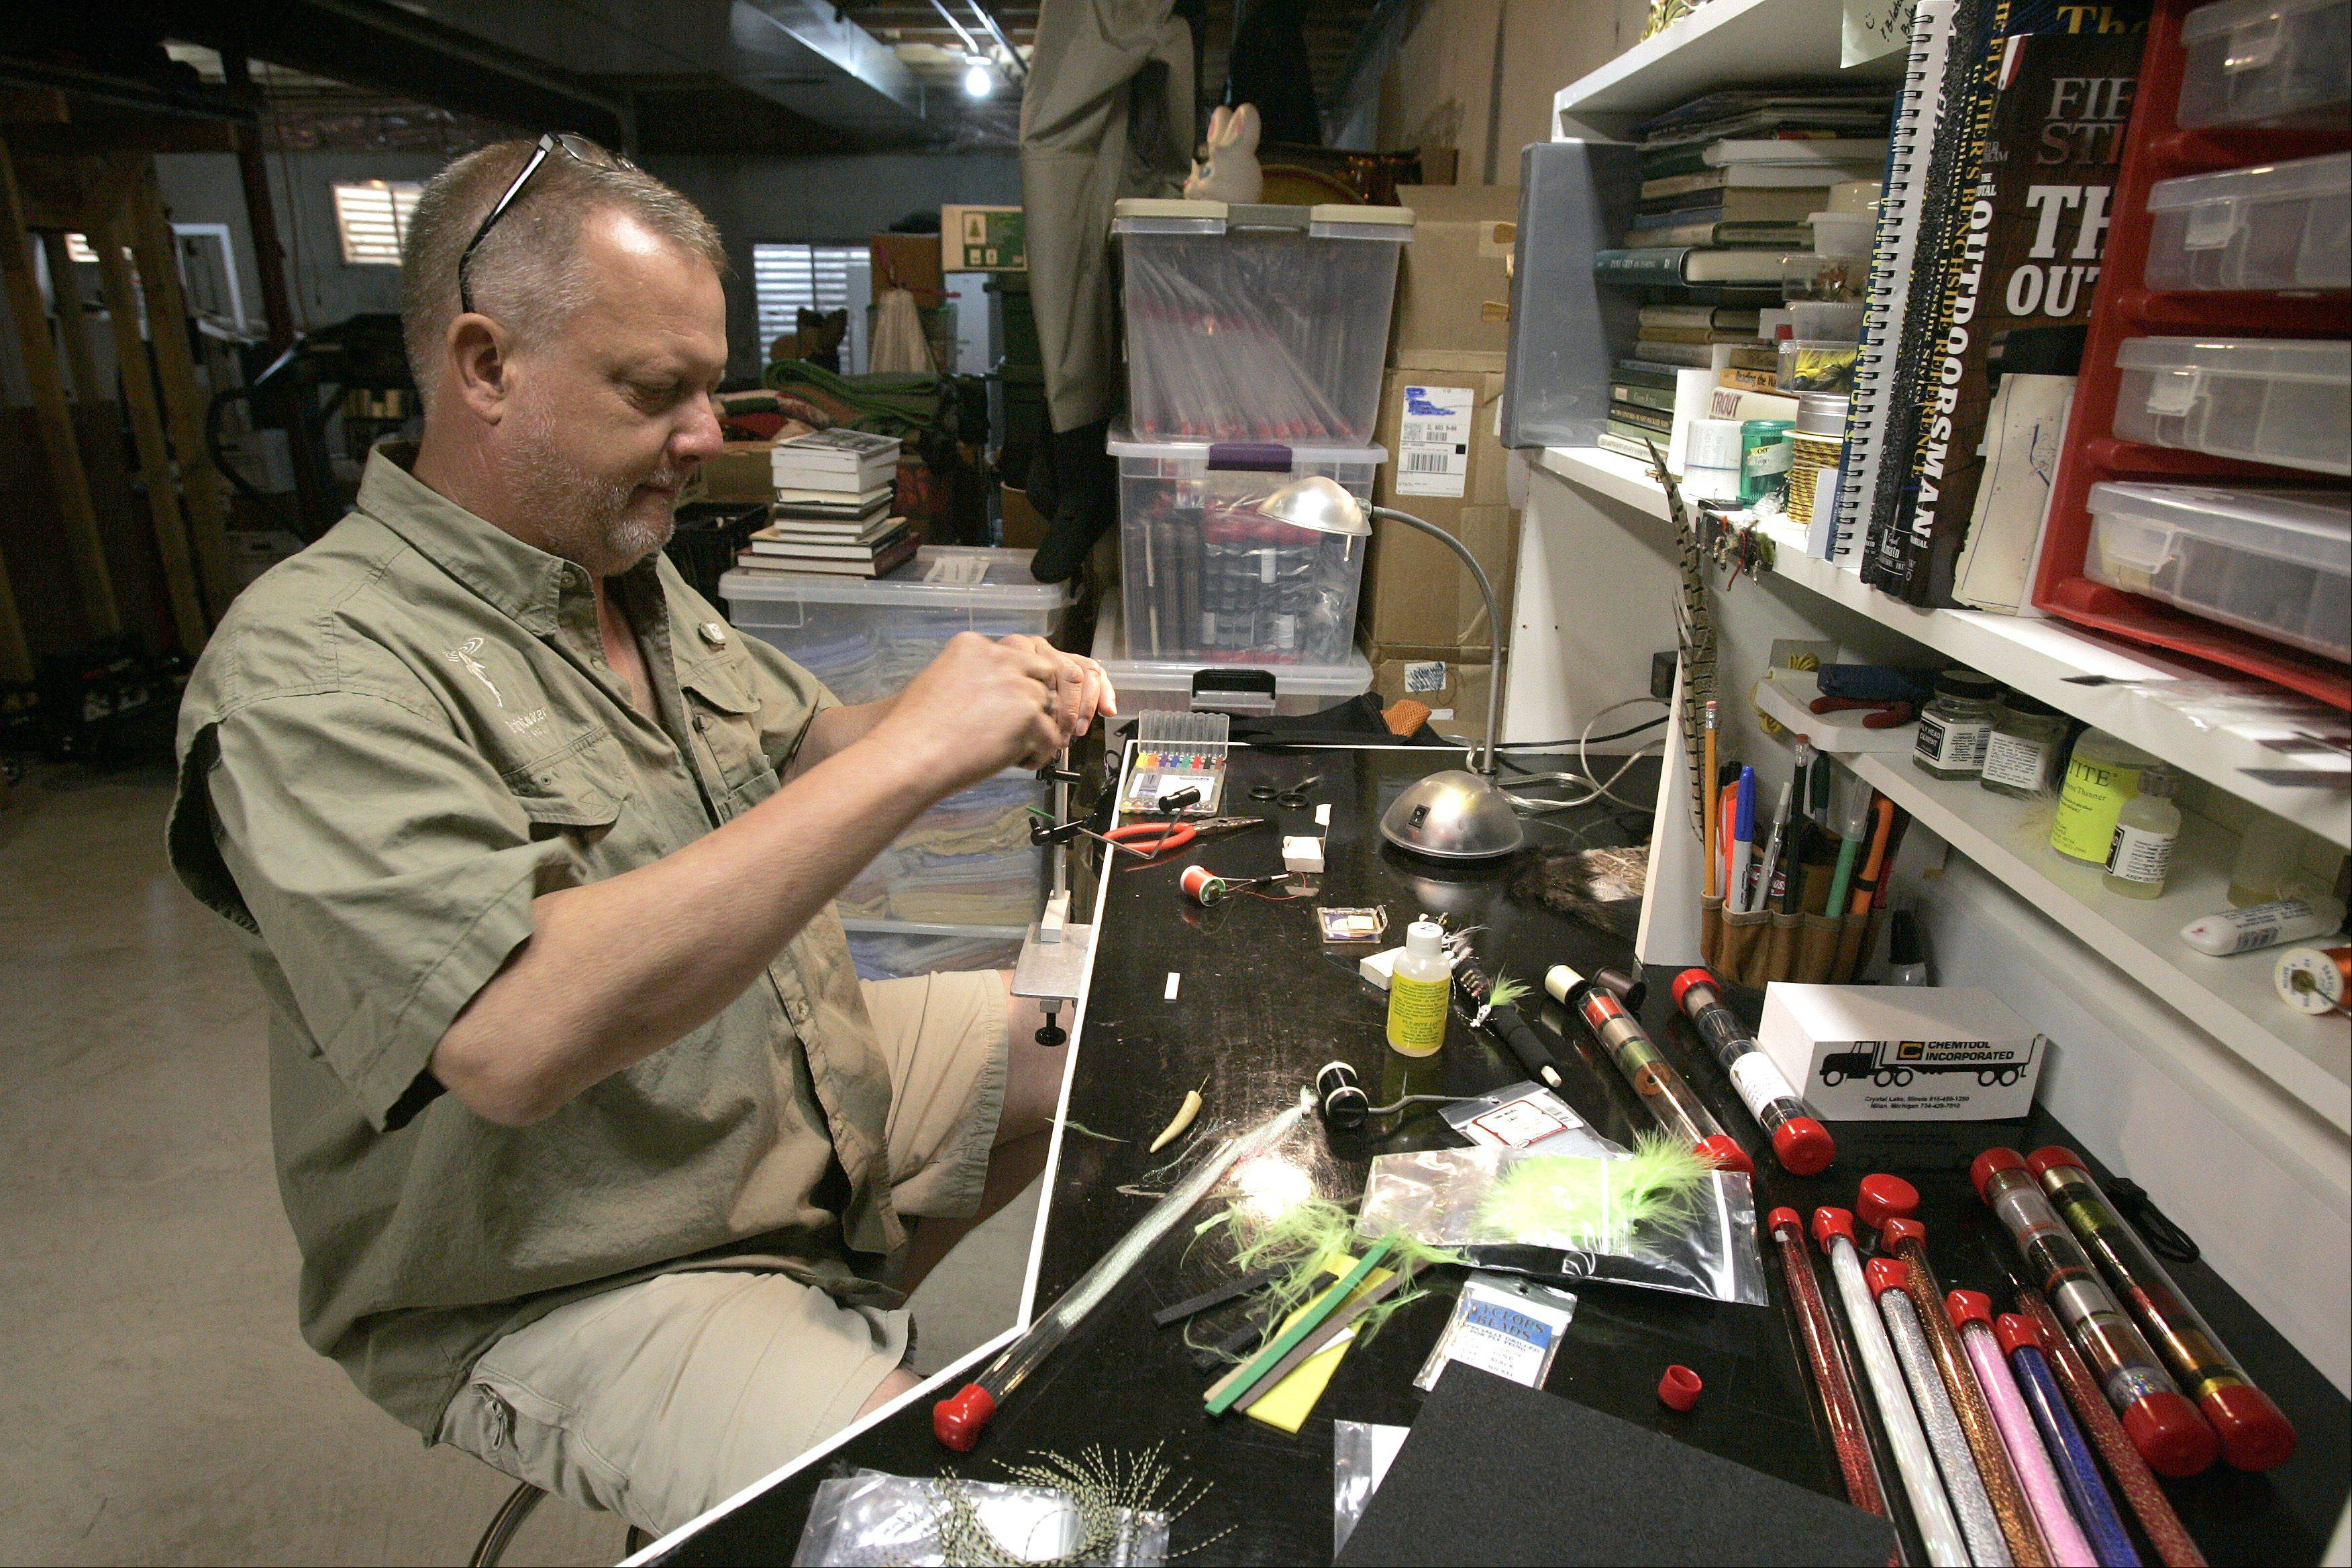 """Tying flies is a cheaper alternative. It's a good way to pass the time, especially in the winter,"" Domagalski said."